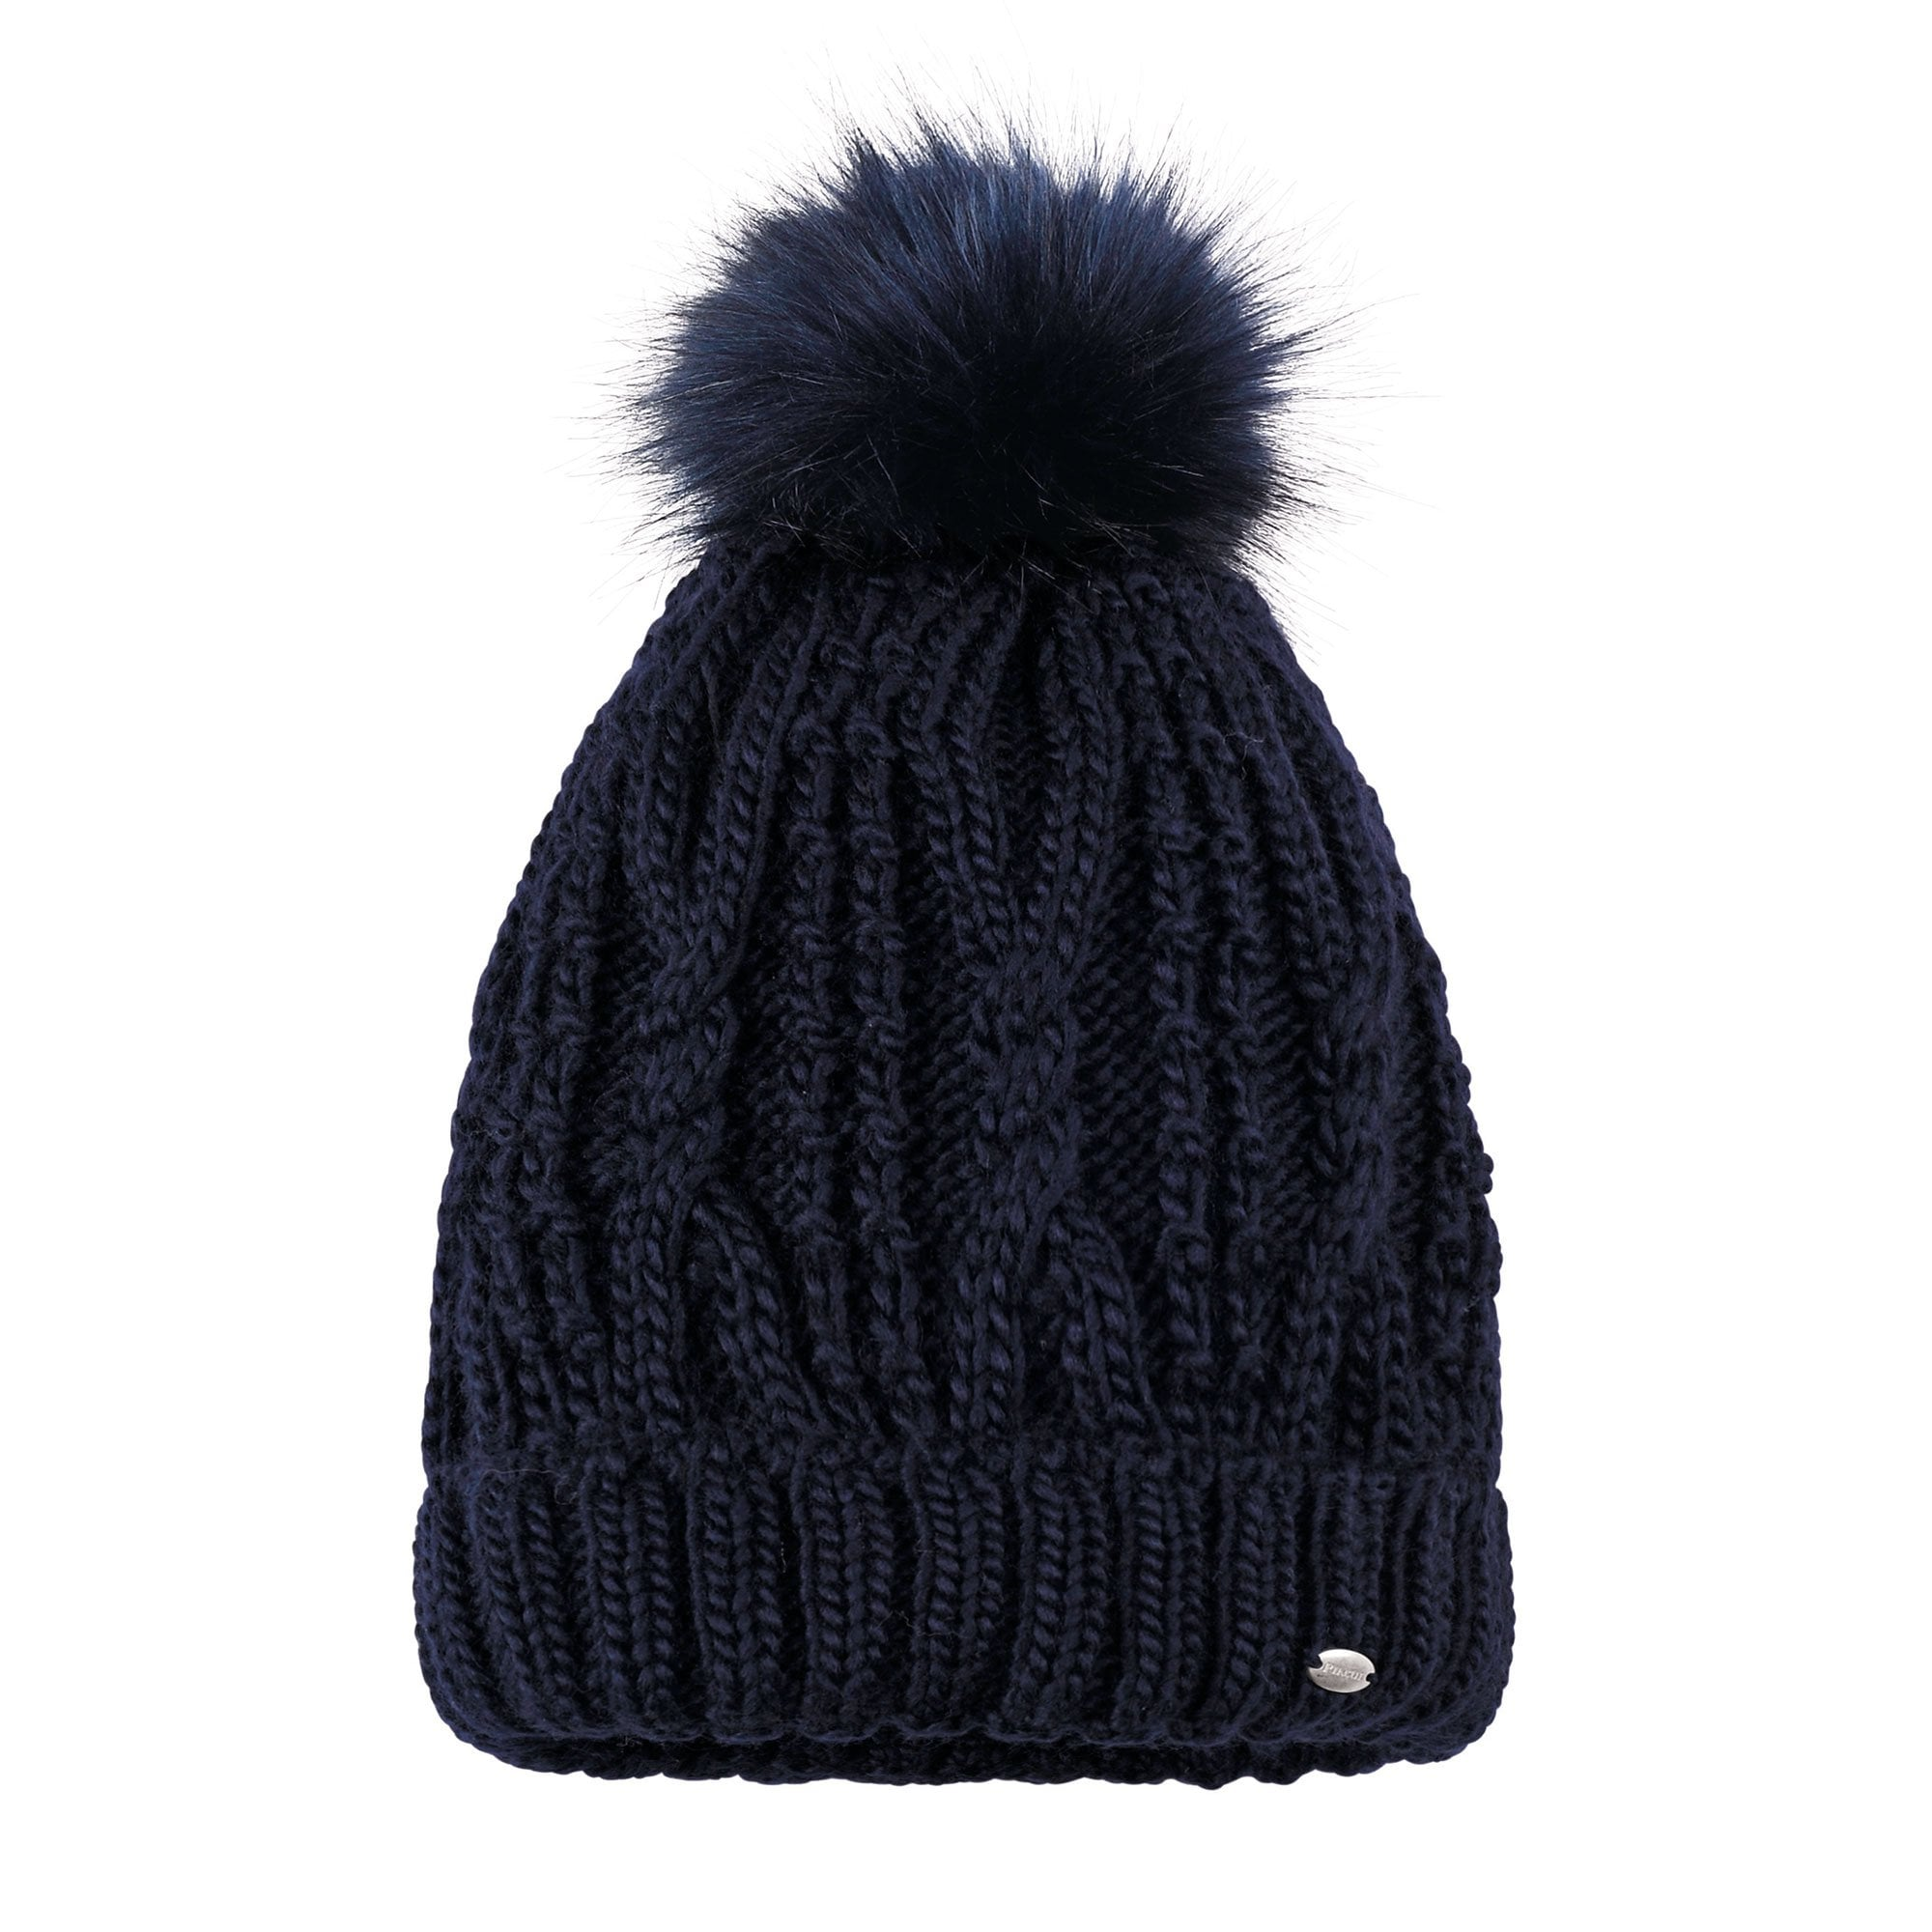 46568222f8b closeout pikeur bobble hat 83adf 28594